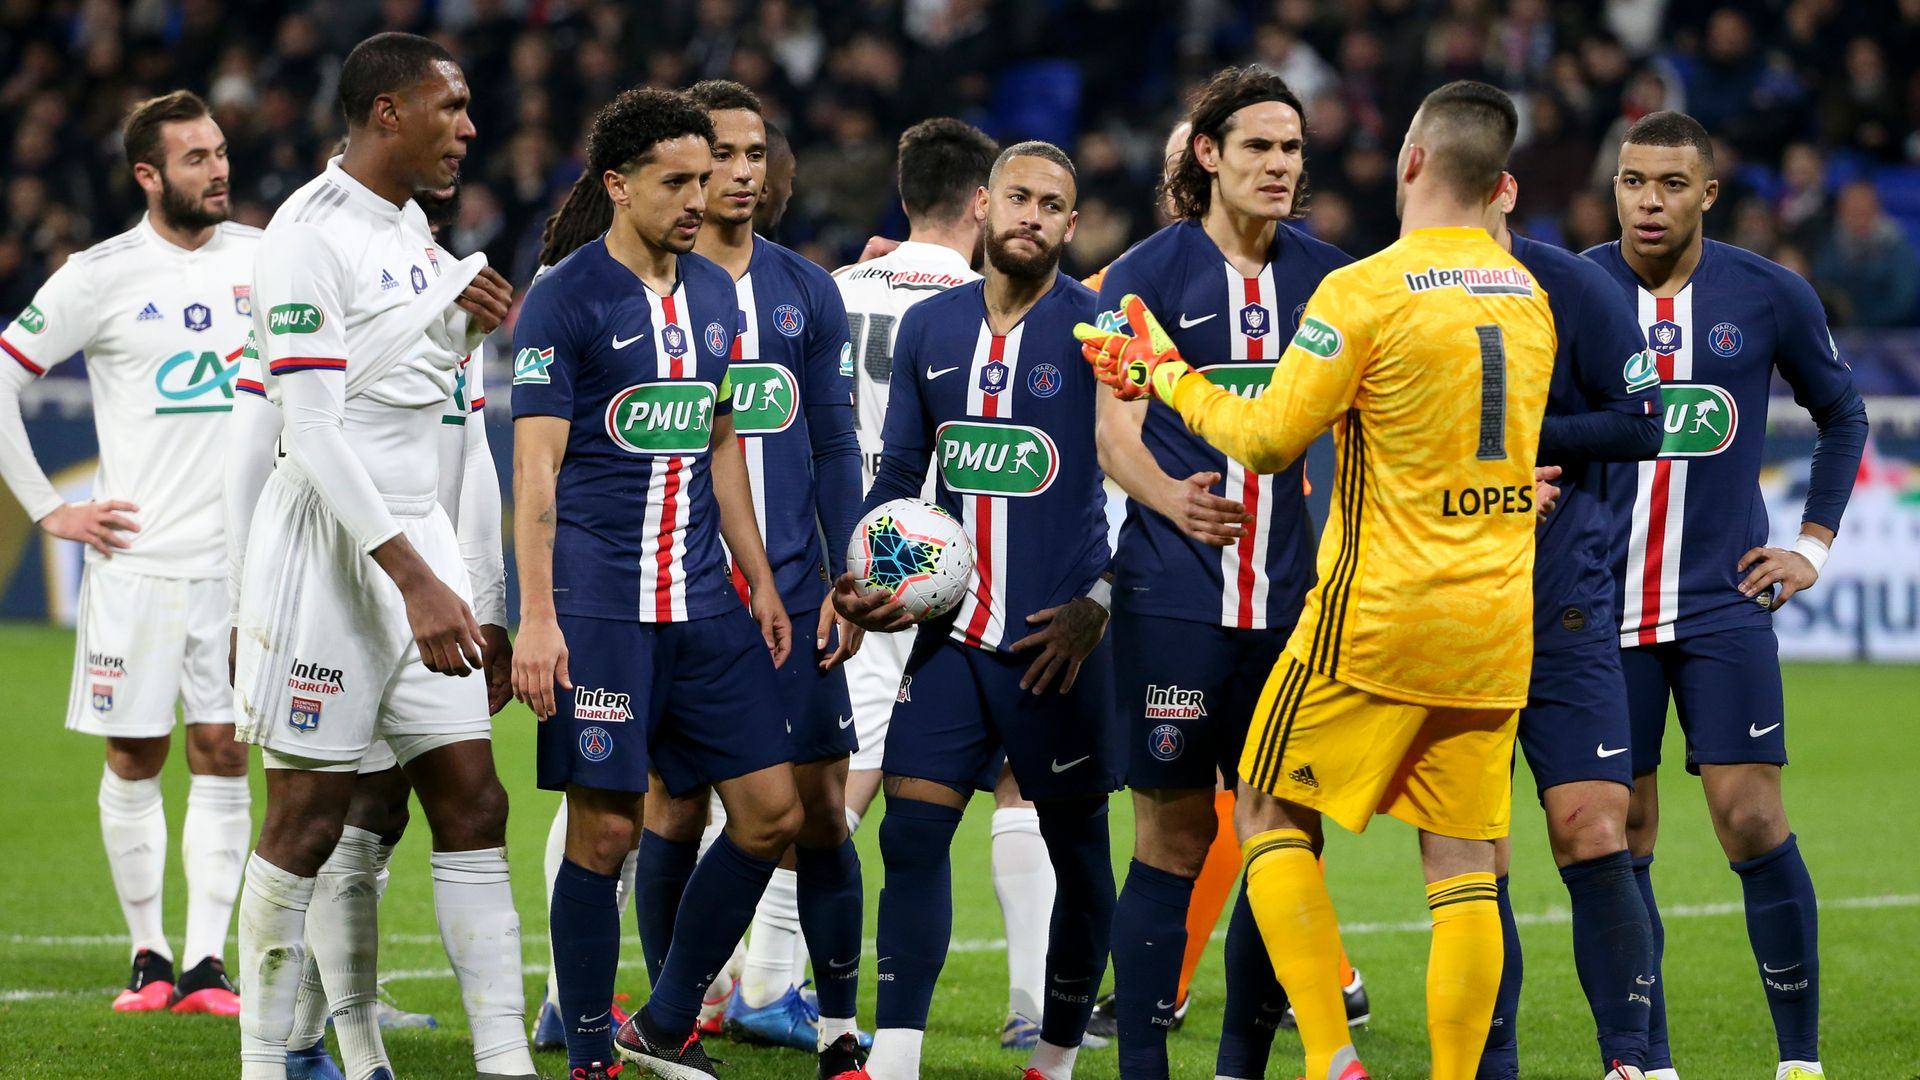 Lyon: French football moving in wrong direction